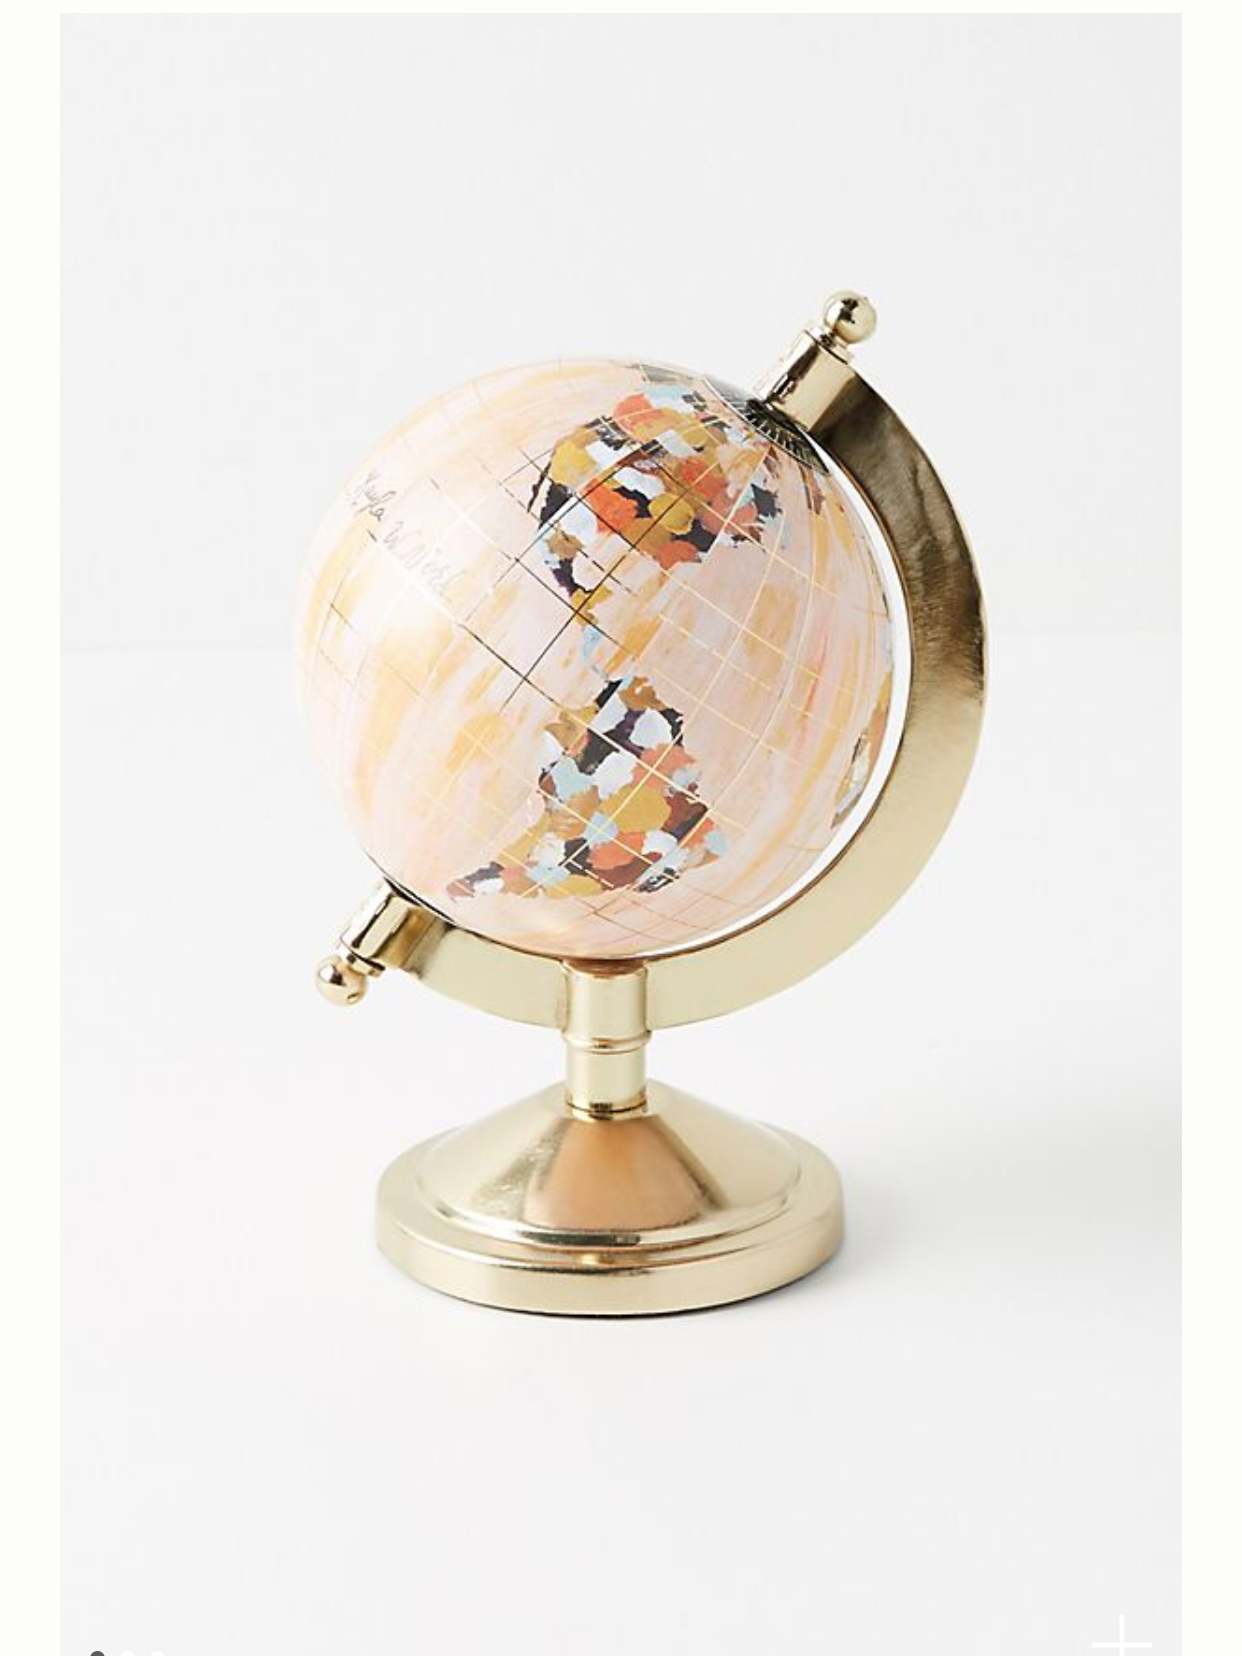 - Loving this globe! How pretty!Find it here.